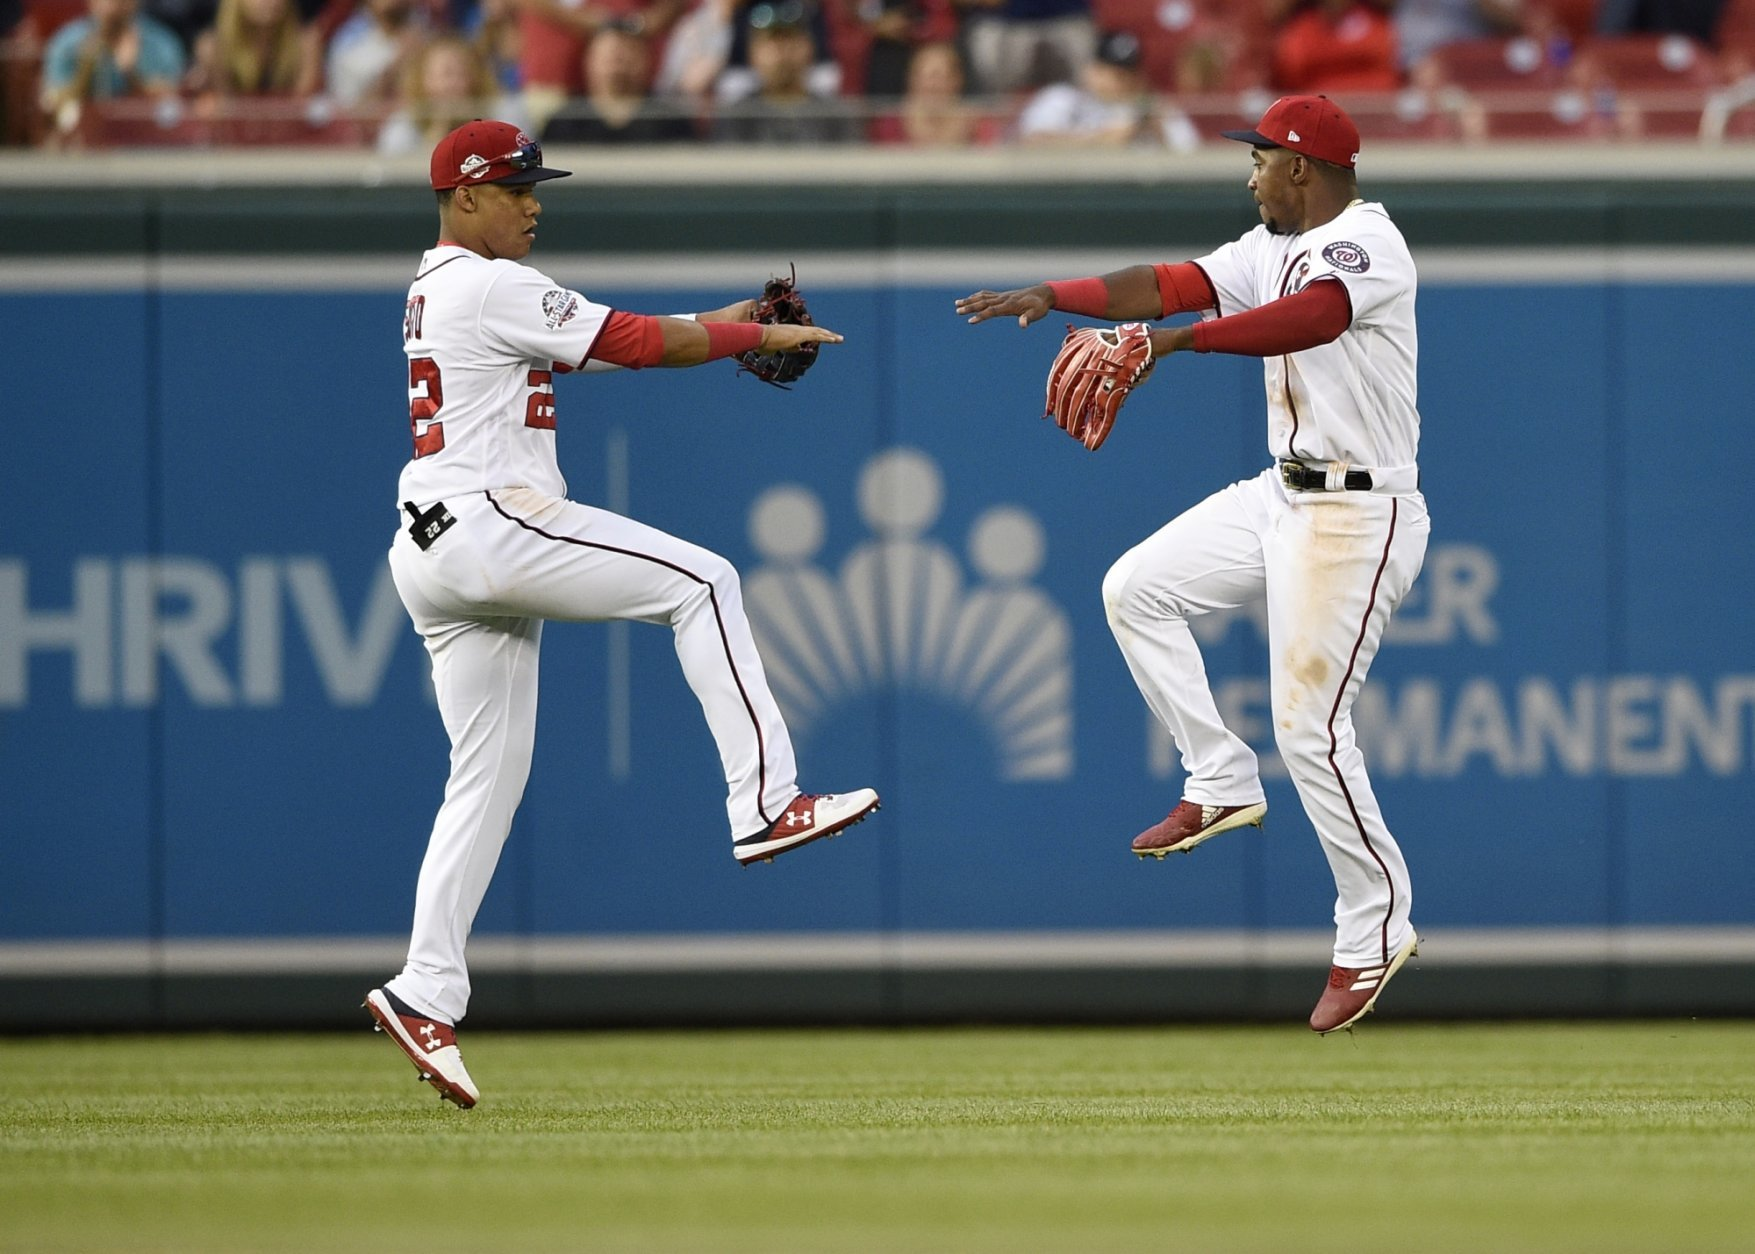 Washington Nationals' Juan Soto celebrates with Victor Robles, right, after a baseball game against the New York Mets, Saturday, Sept. 22, 2018, in Washington. The Nationals won 6-0.(AP Photo/Nick Wass)